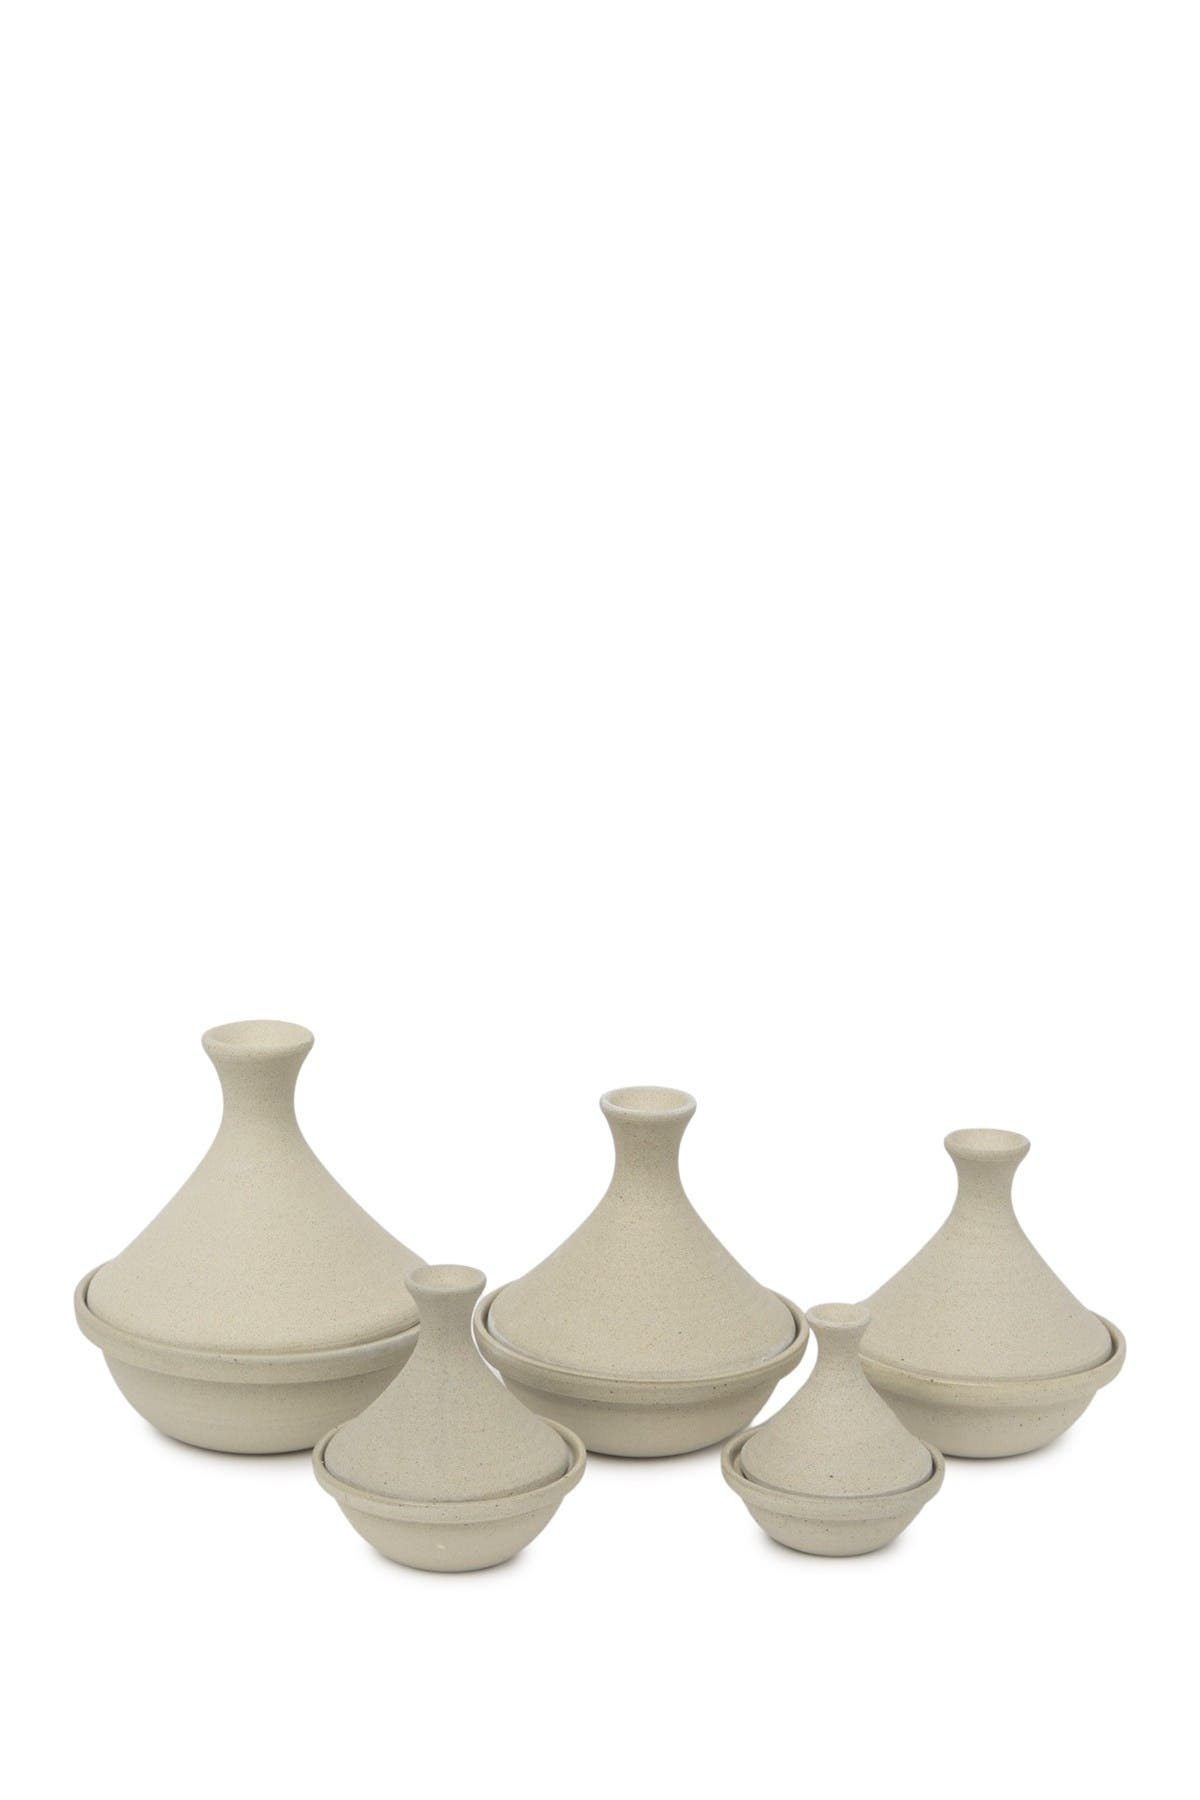 Image of ROOST Safi Stoneware Tagine - Oyster - Set of 5